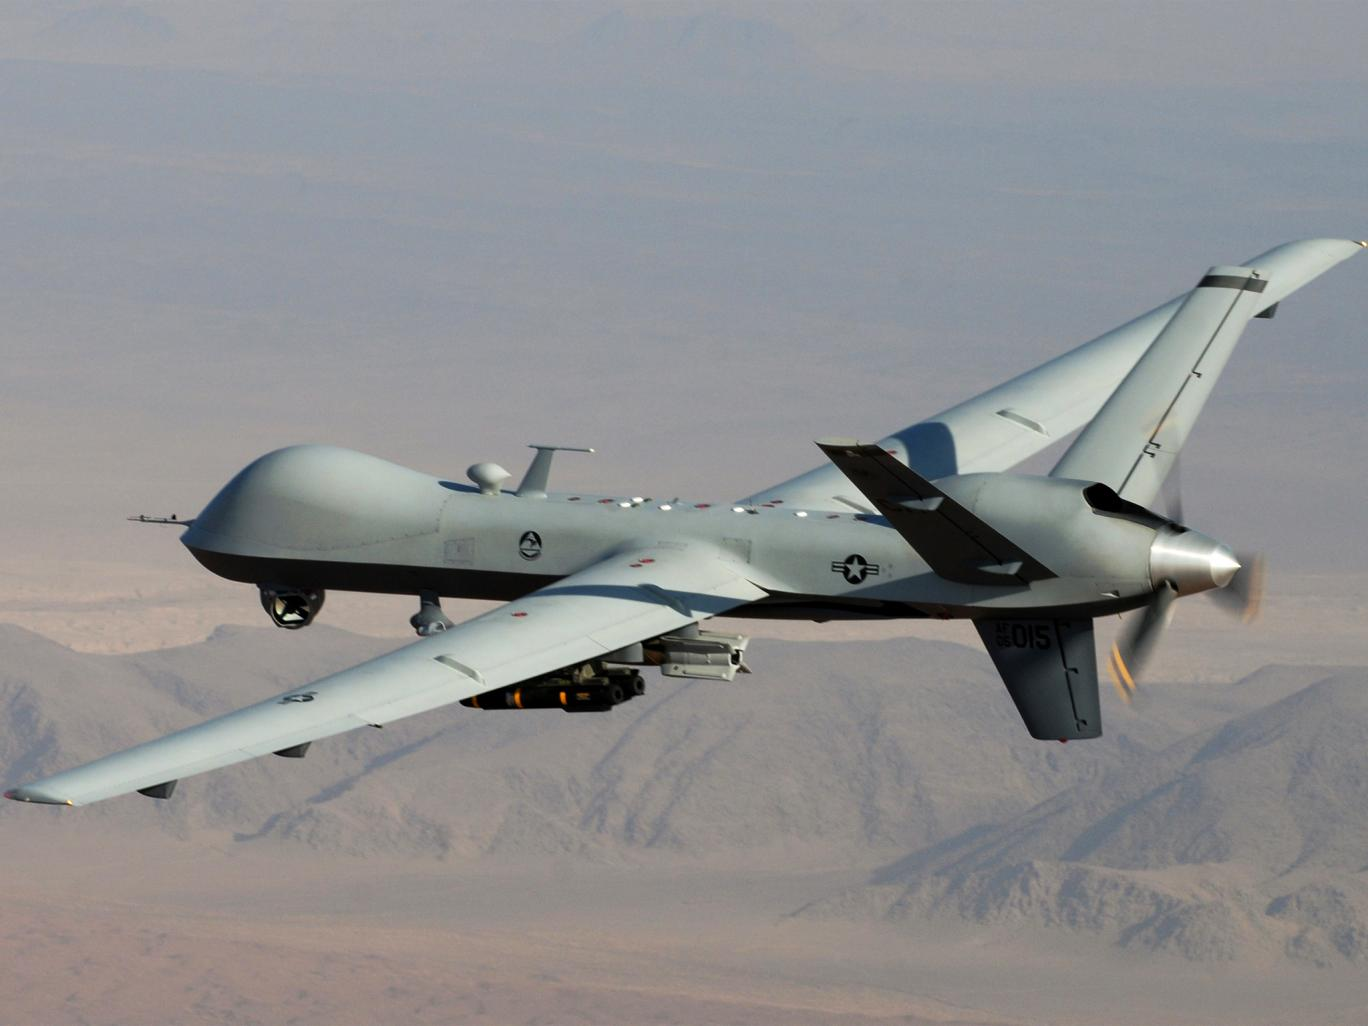 I'm on the Kill List. This is what it feels like to be hunted by drones